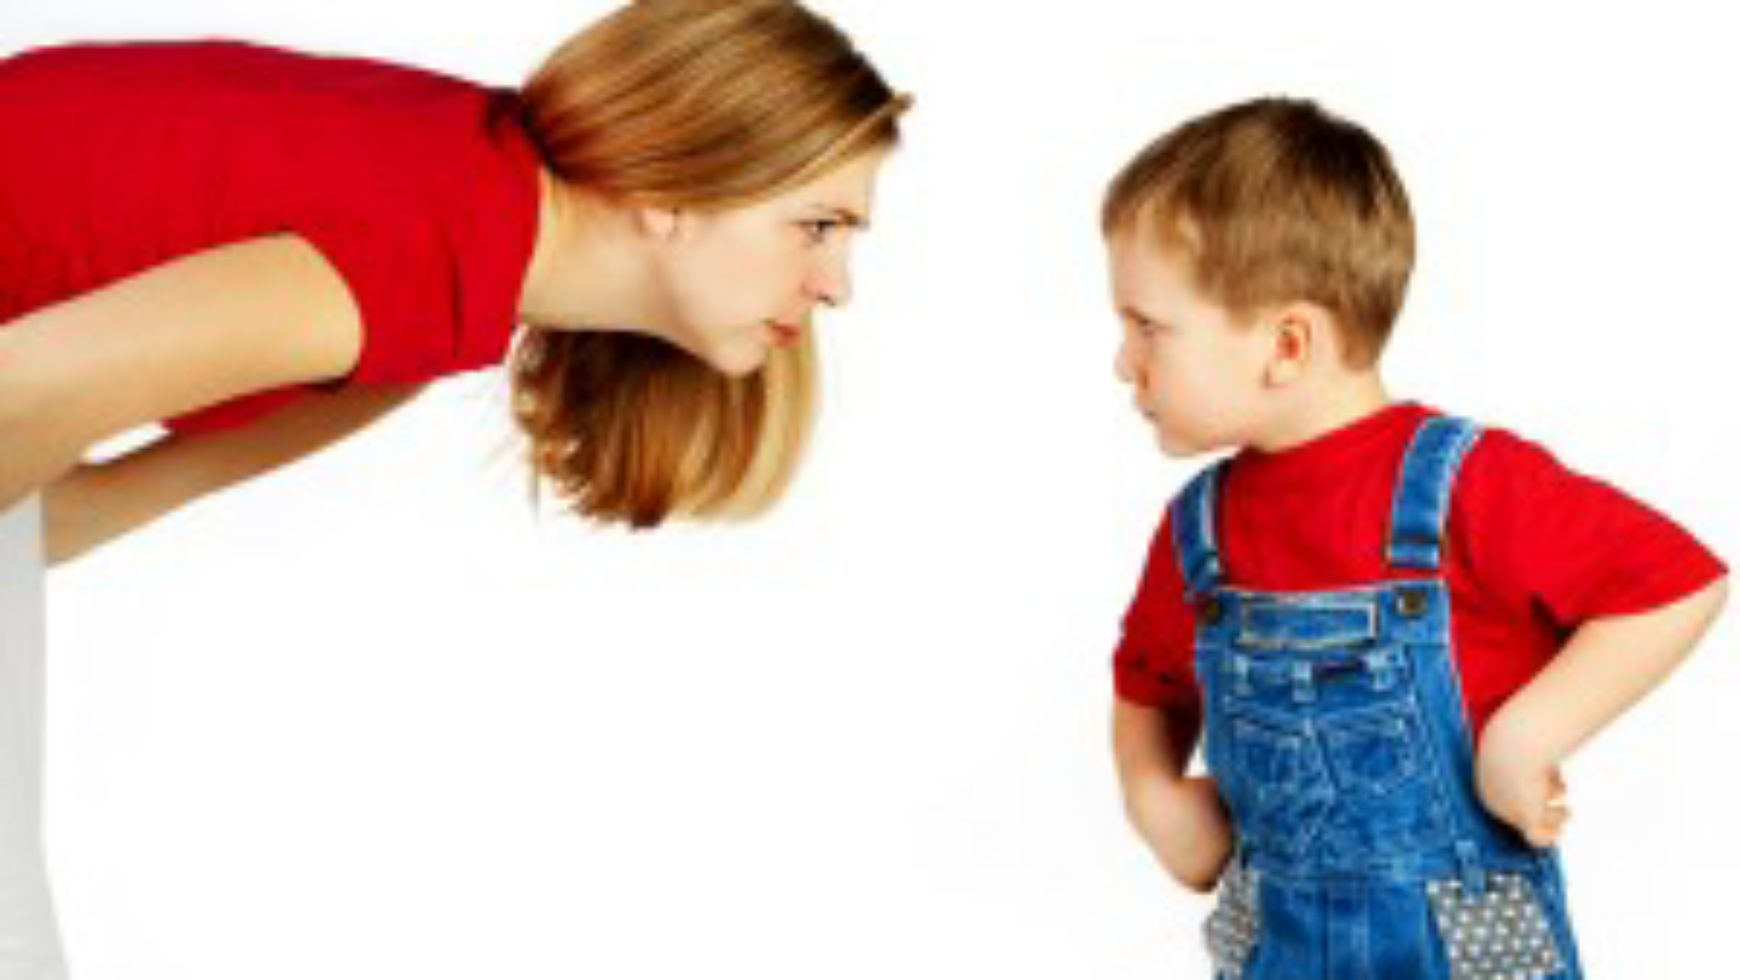 BE FLEXIBLE, USE A TAILORED PARENTING STYLE